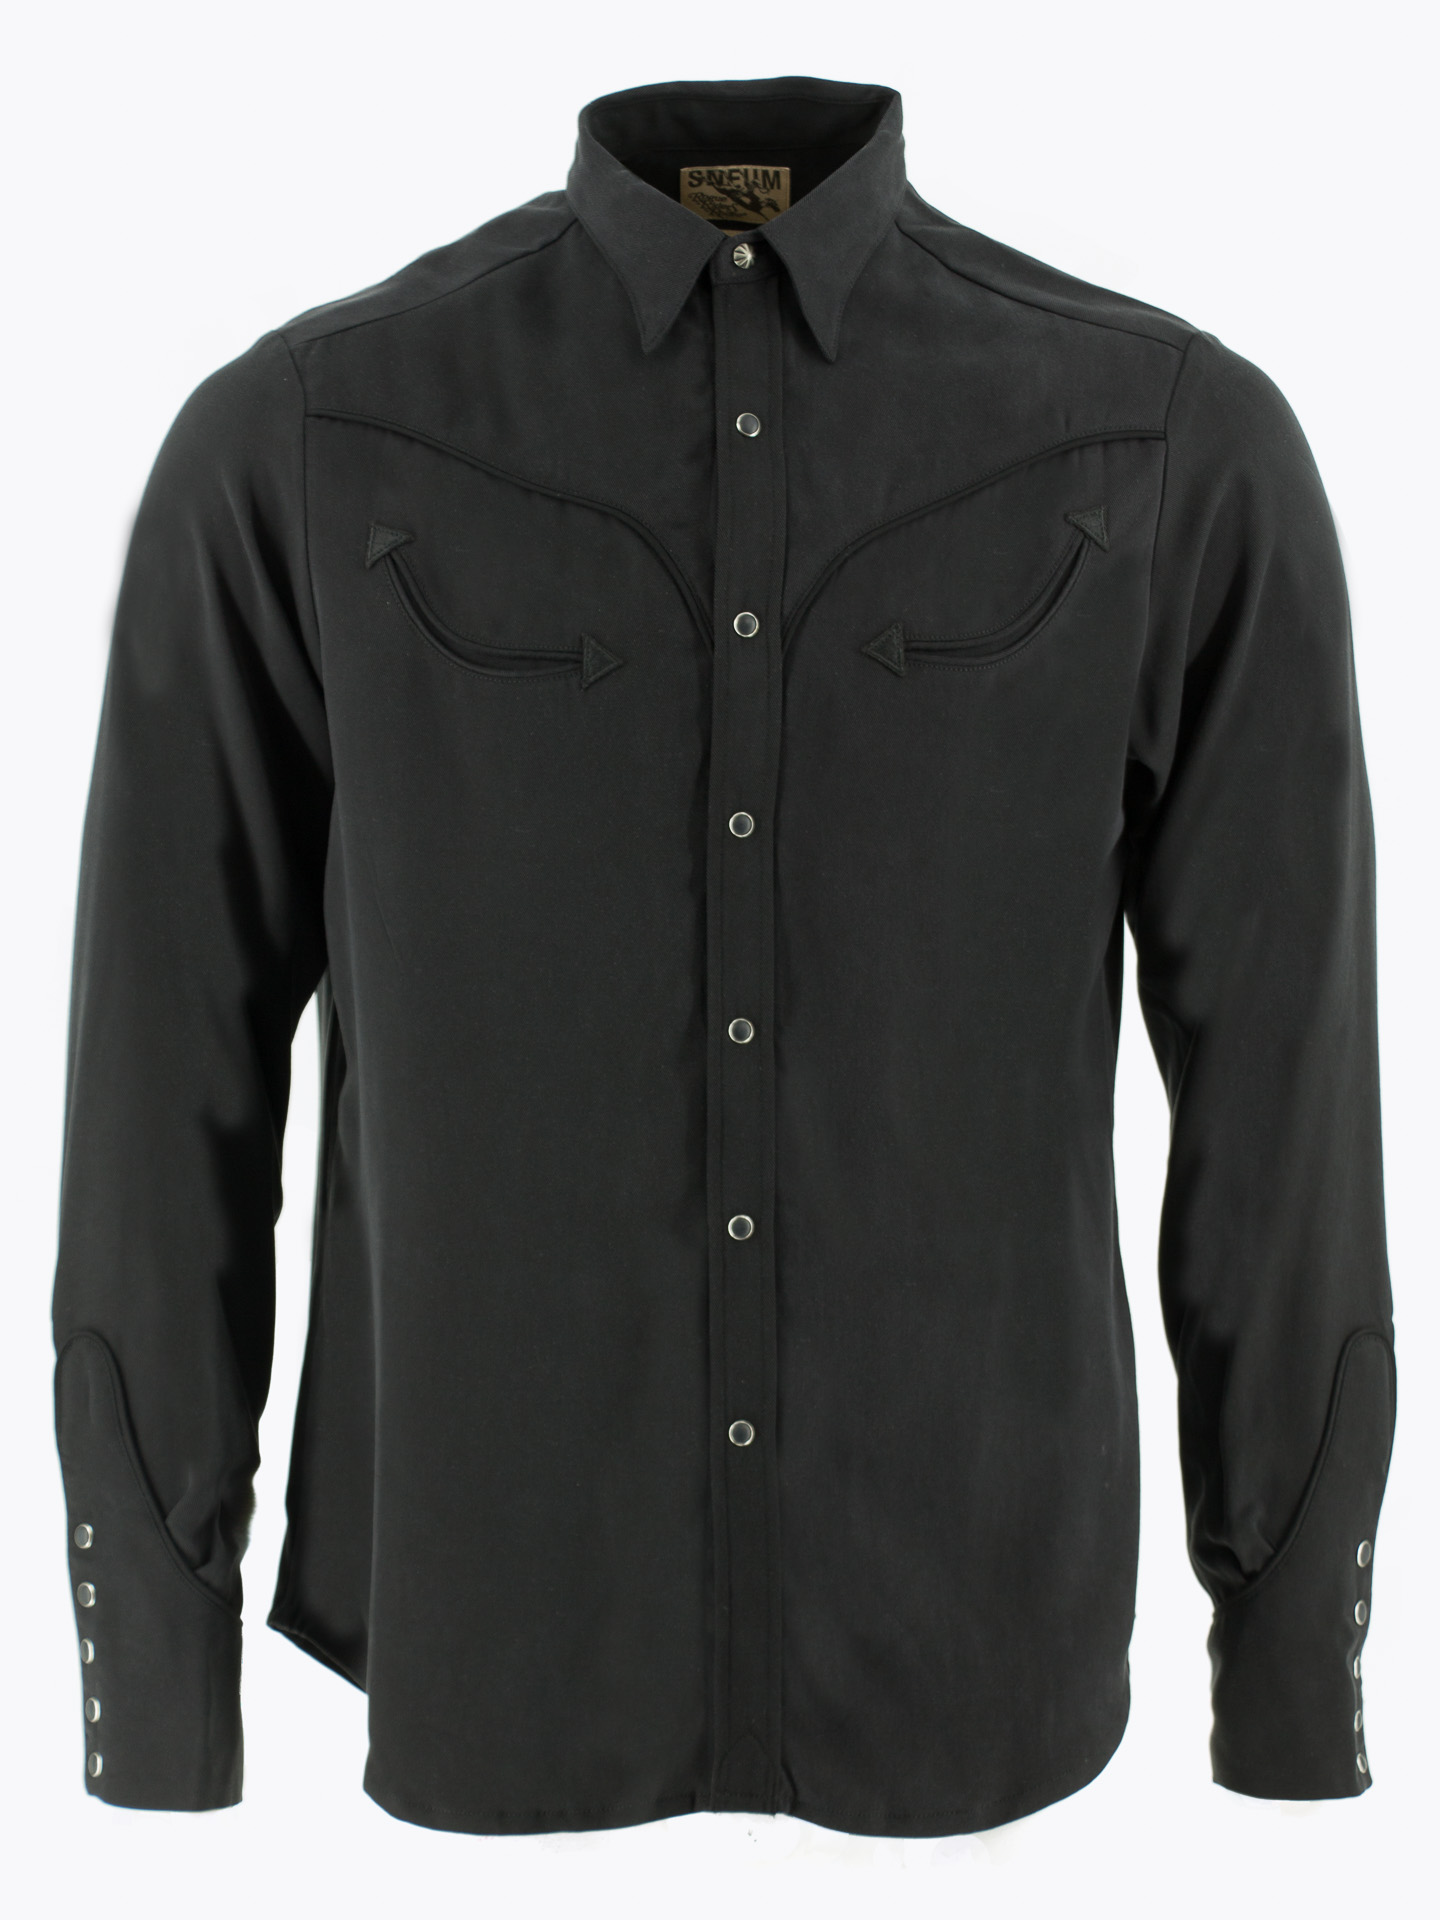 Two-tone smile pocket western shirt in black on black